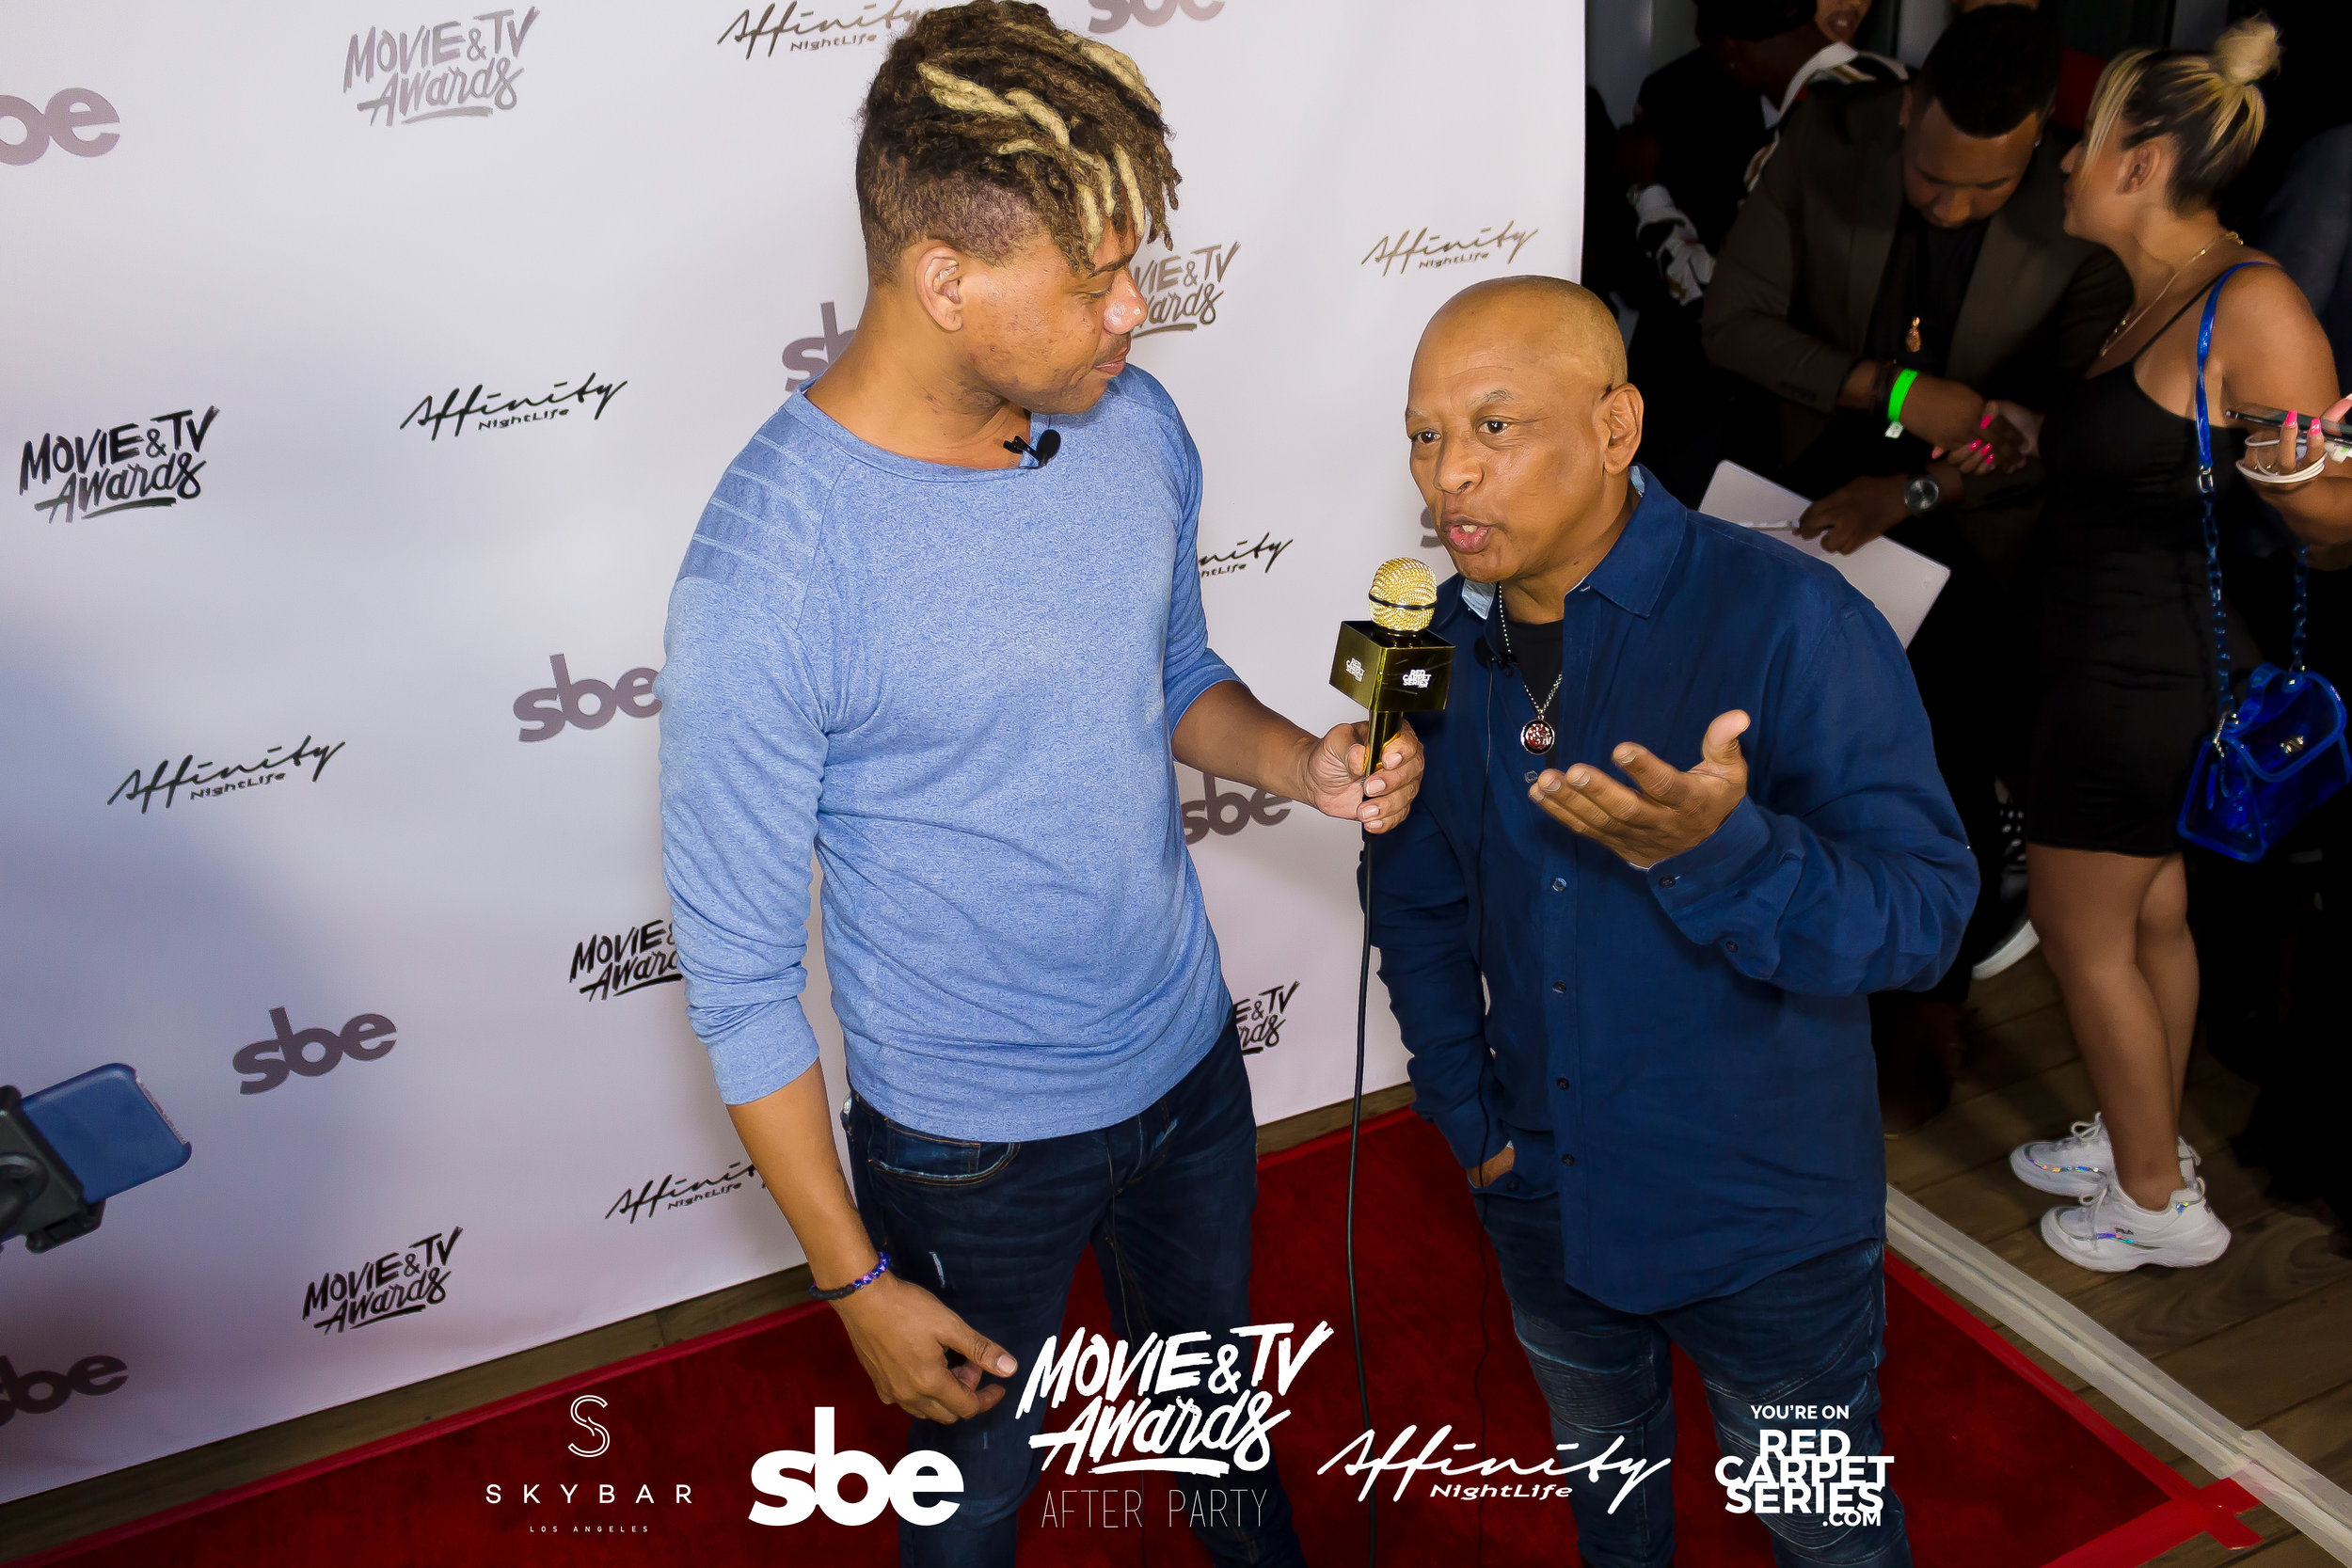 Affinity Nightlife MTV Movie & TV Awards After Party - Skybar at Mondrian - 06-15-19 - Vol. 1_40.jpg